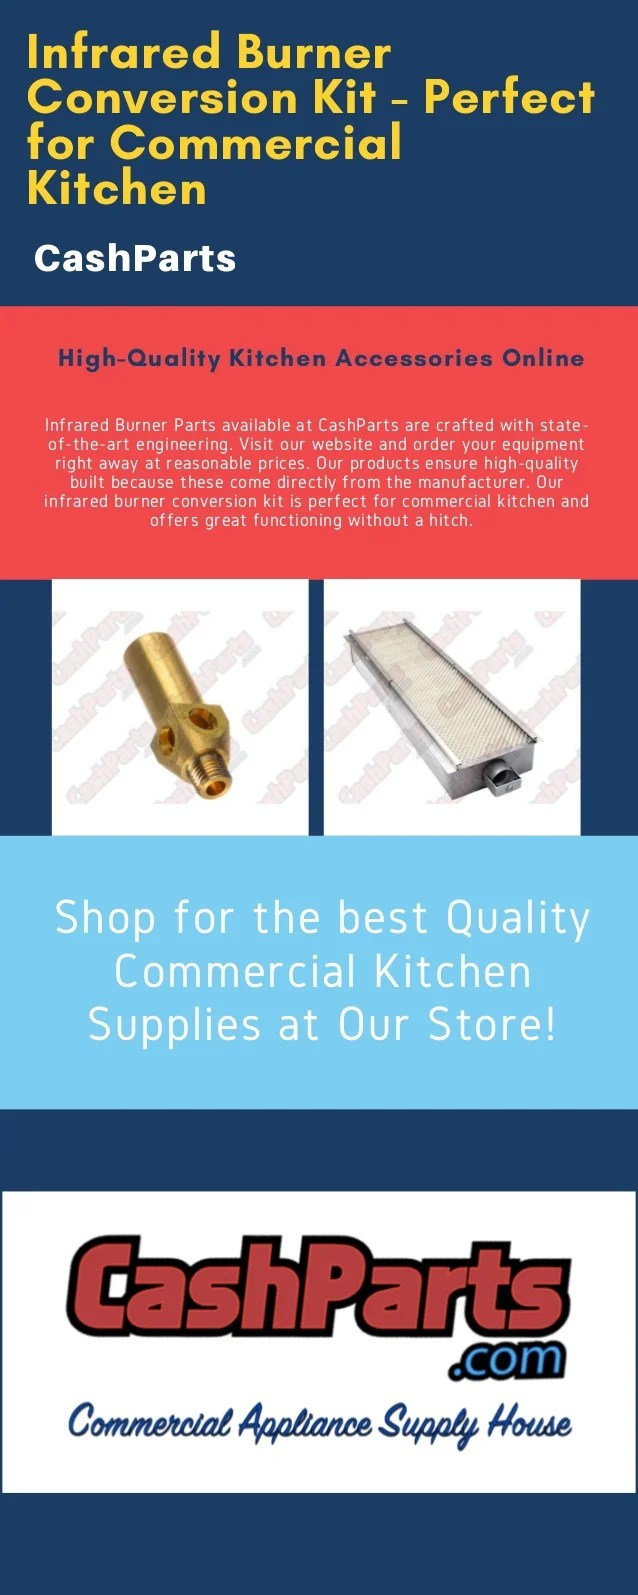 commercial kitchen supply confidential book infrared burner parts best quality supplies conversion kit perfect for cashparts available at